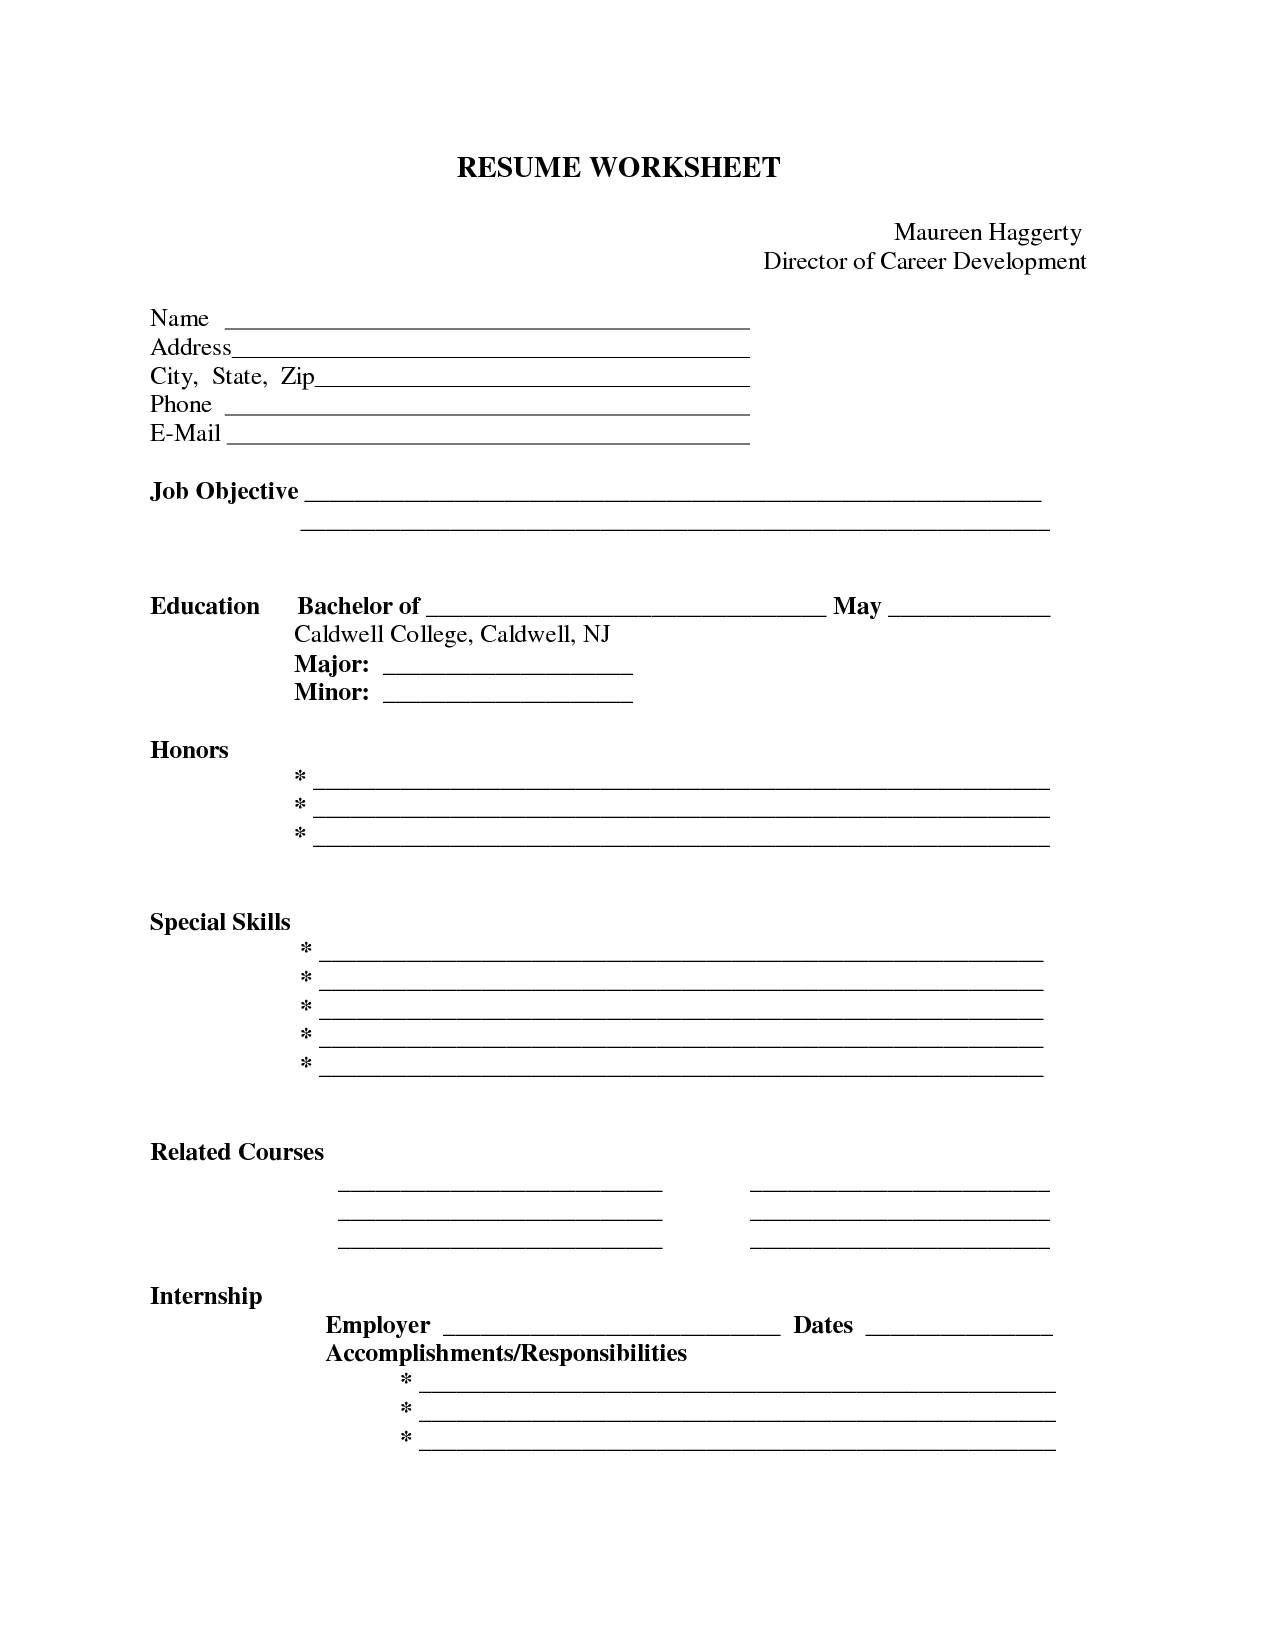 Printable Fill In The Blank Resume Form